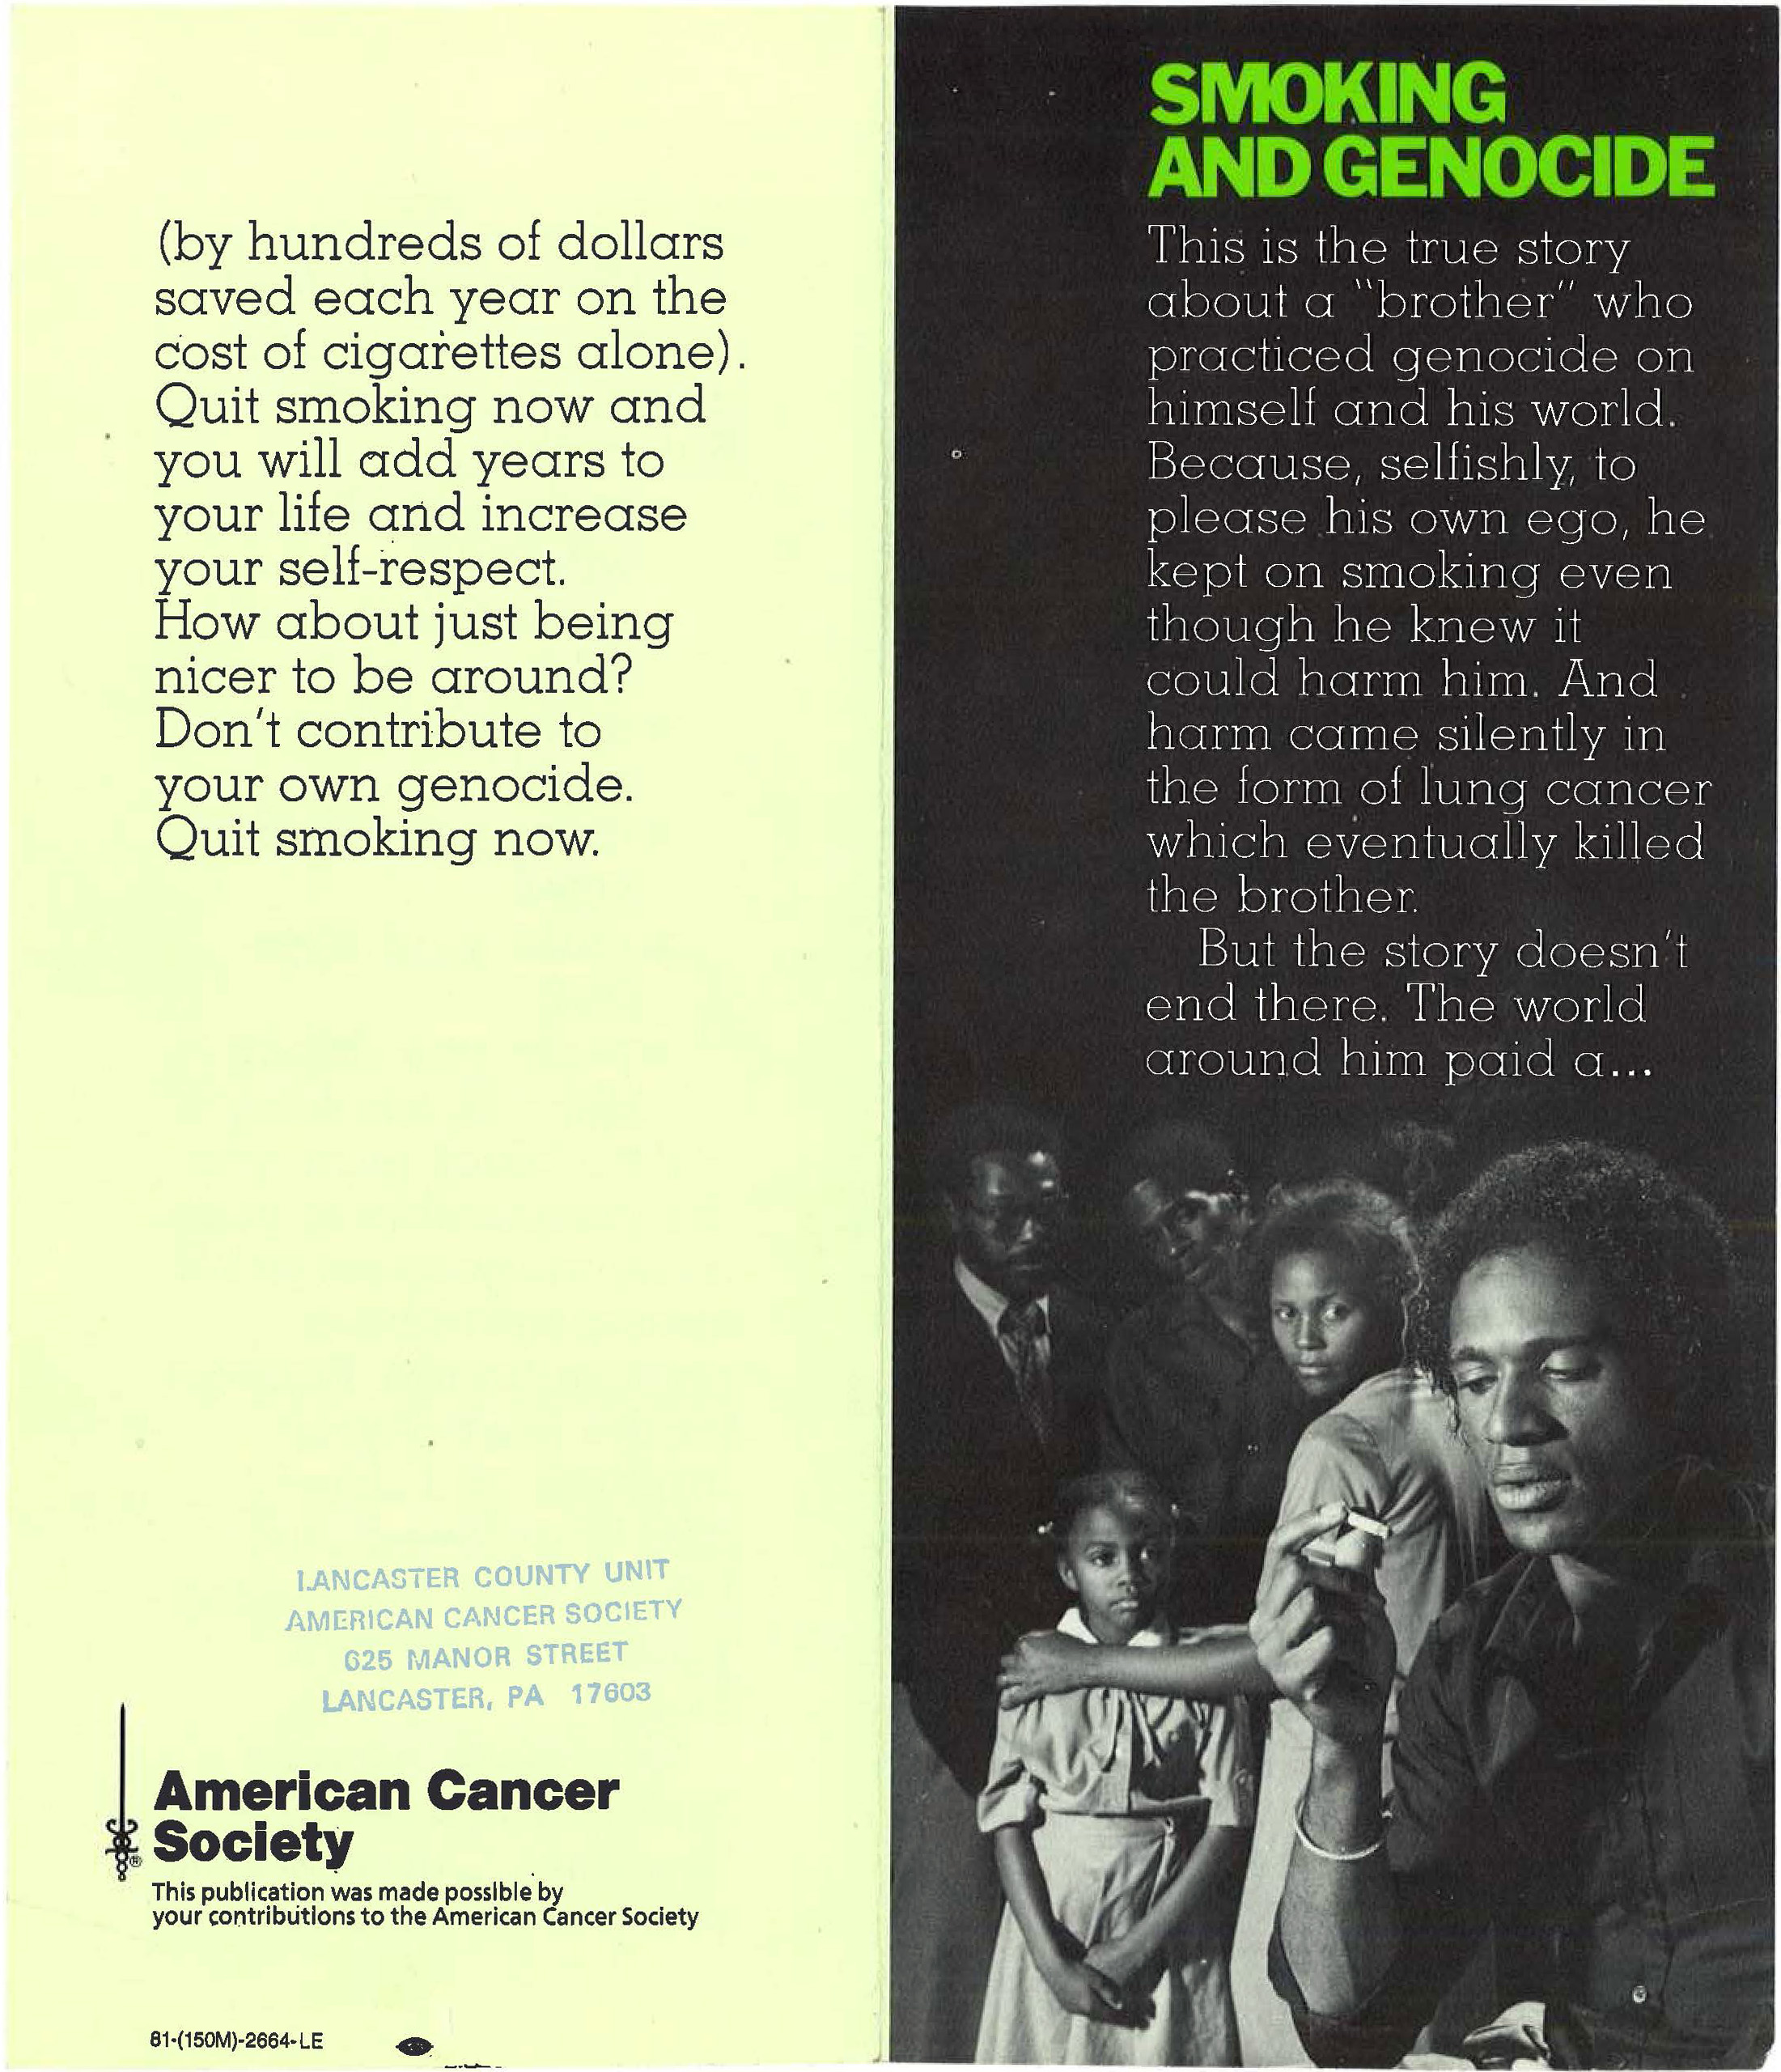 1981 American Cancer Society Smoking Genocide Brochure 1